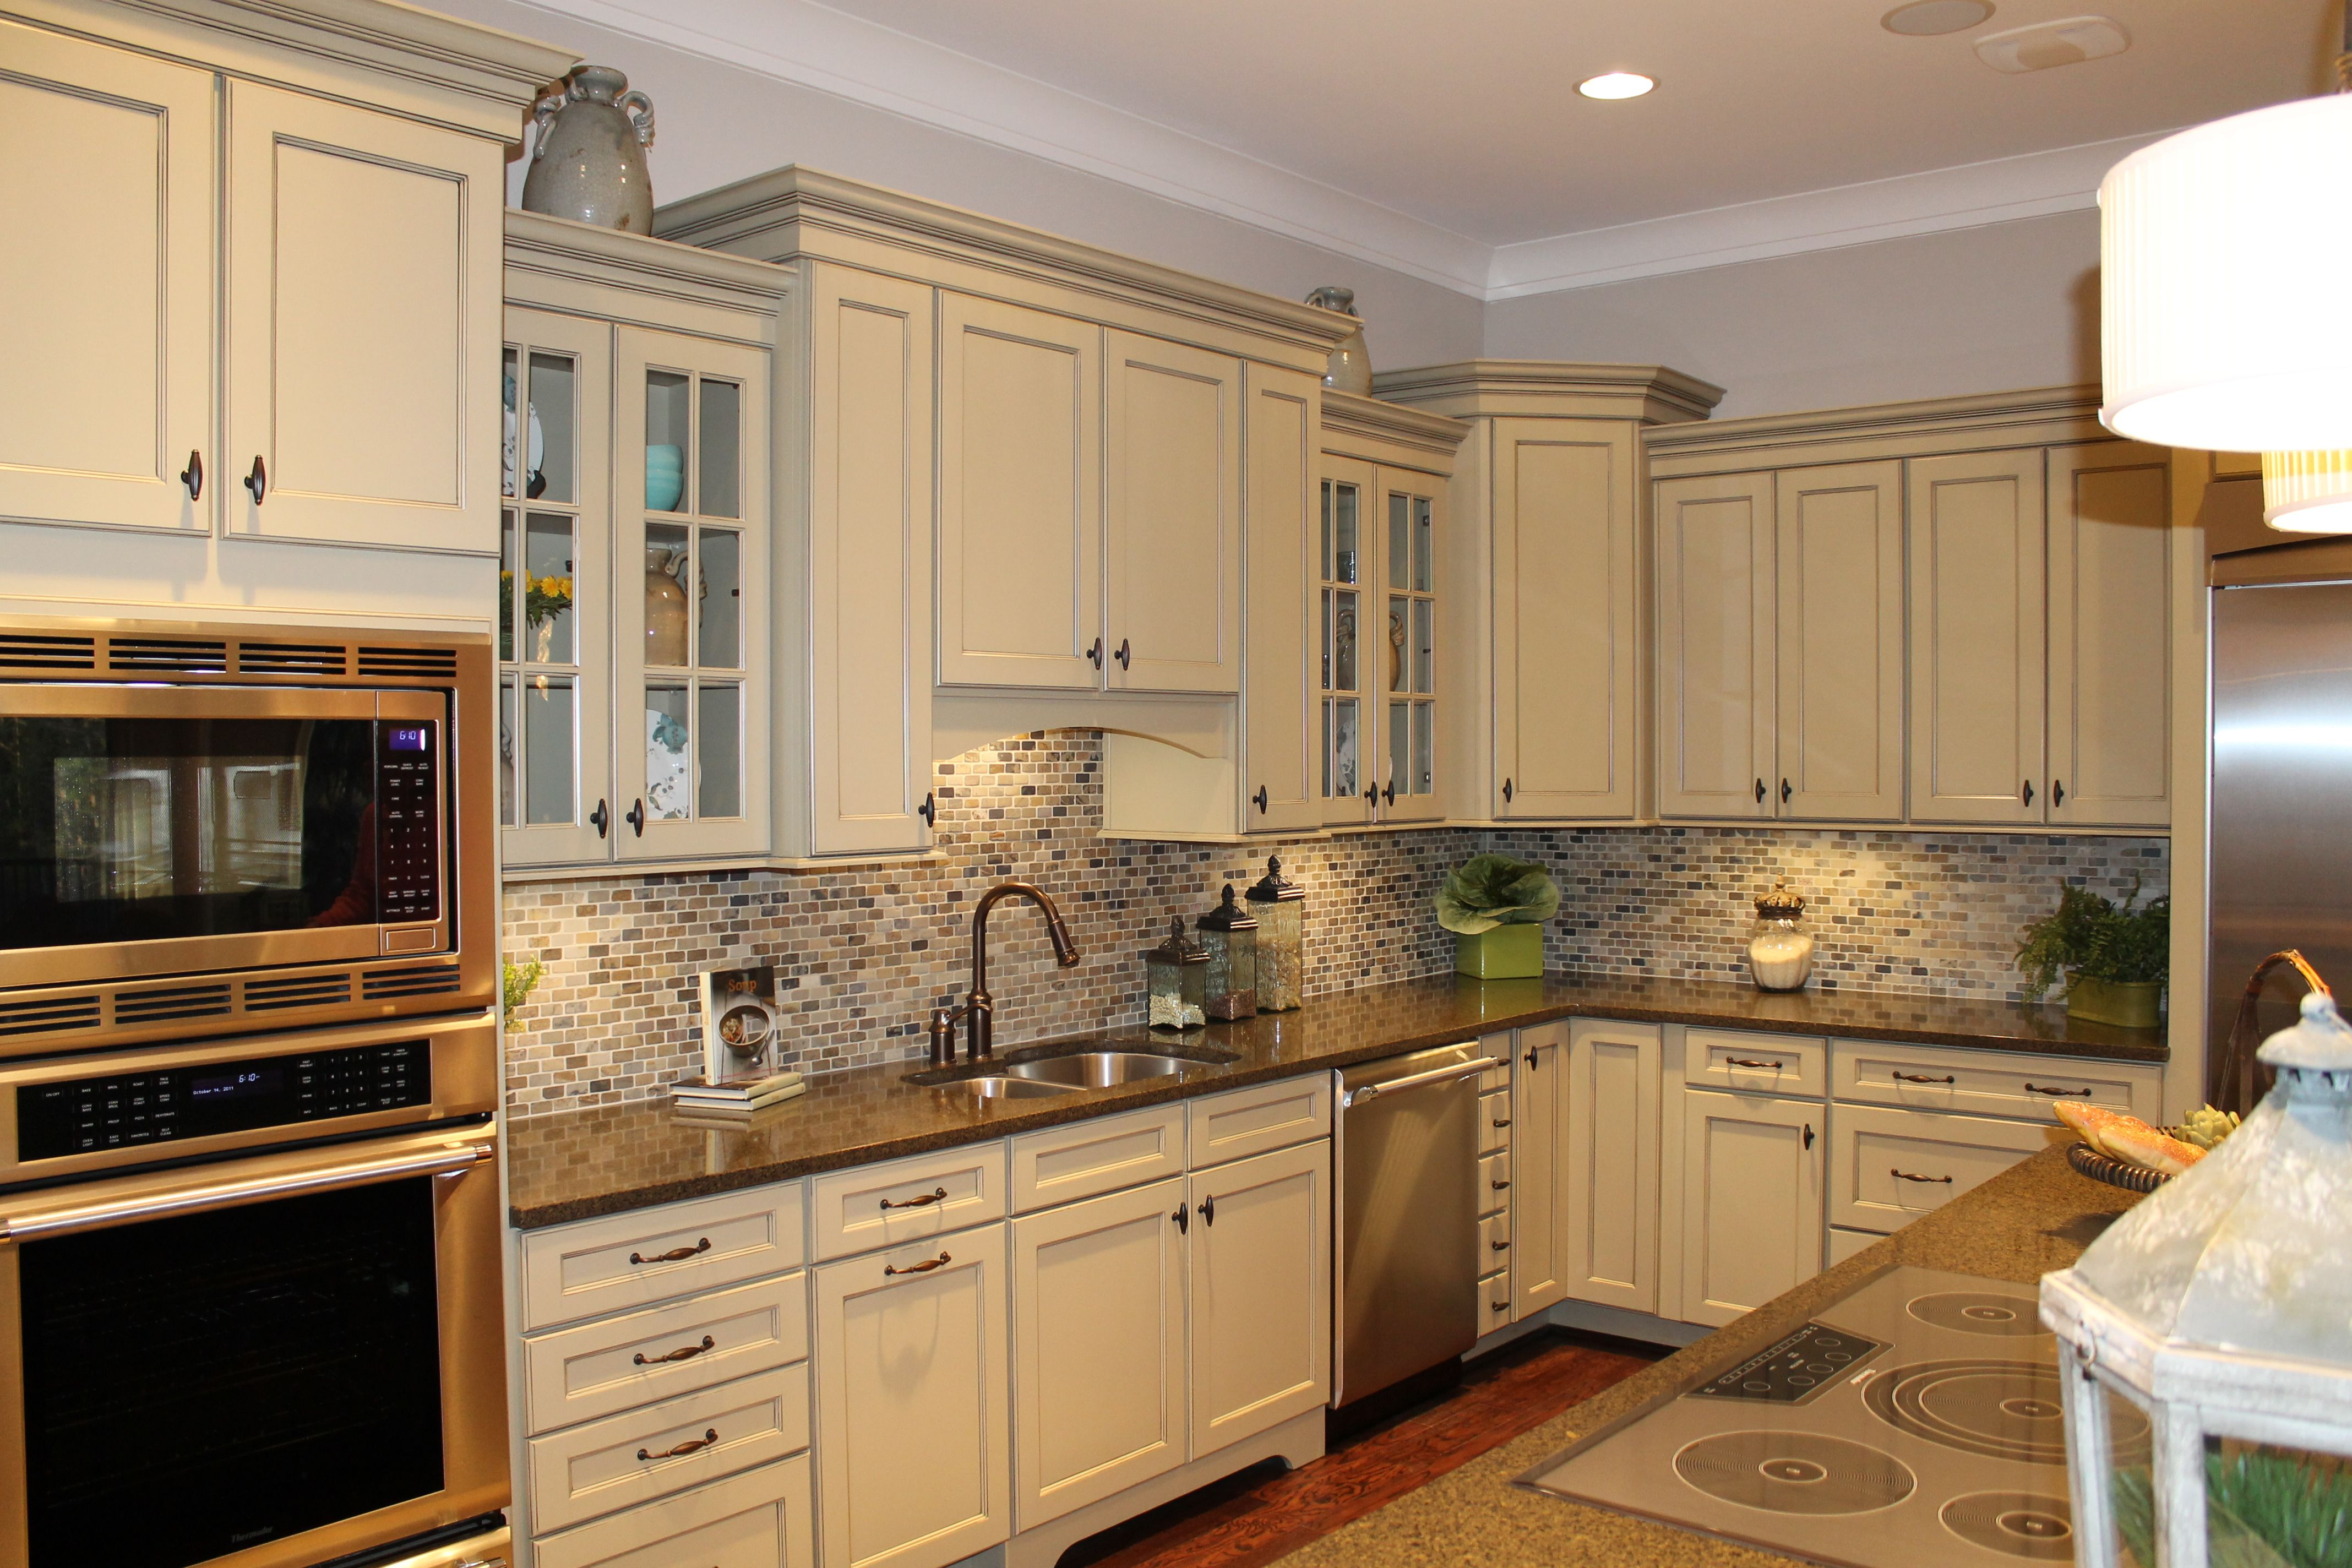 Best Glaze For Kitchen Cabinets  Baxter Homearama Pictures Of Inspiration New Design Kitchen Cabinet Decorating Inspiration